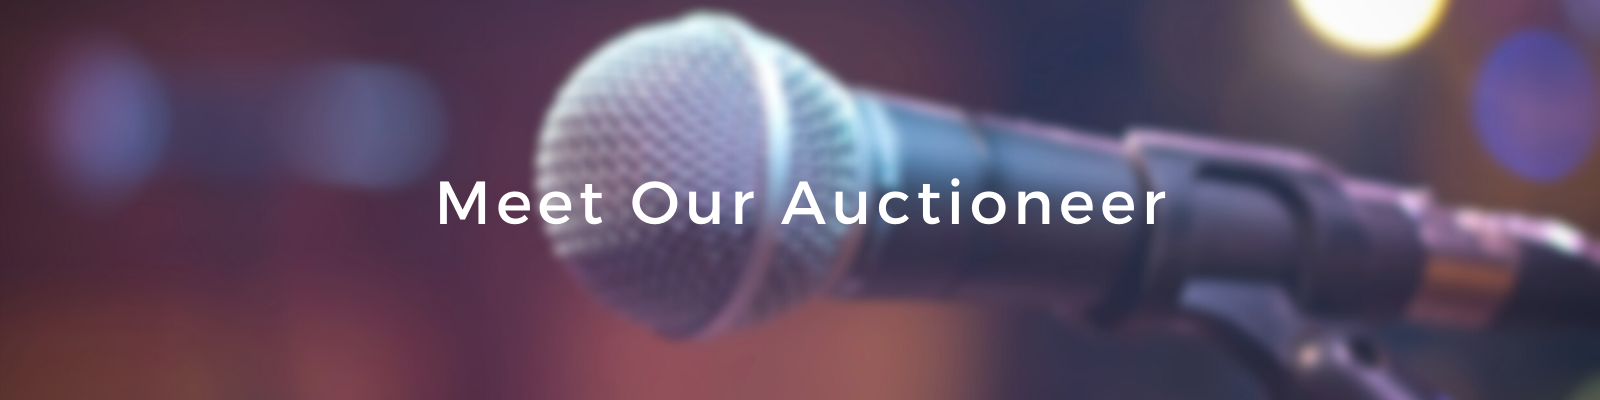 Meet Our Auctioneer